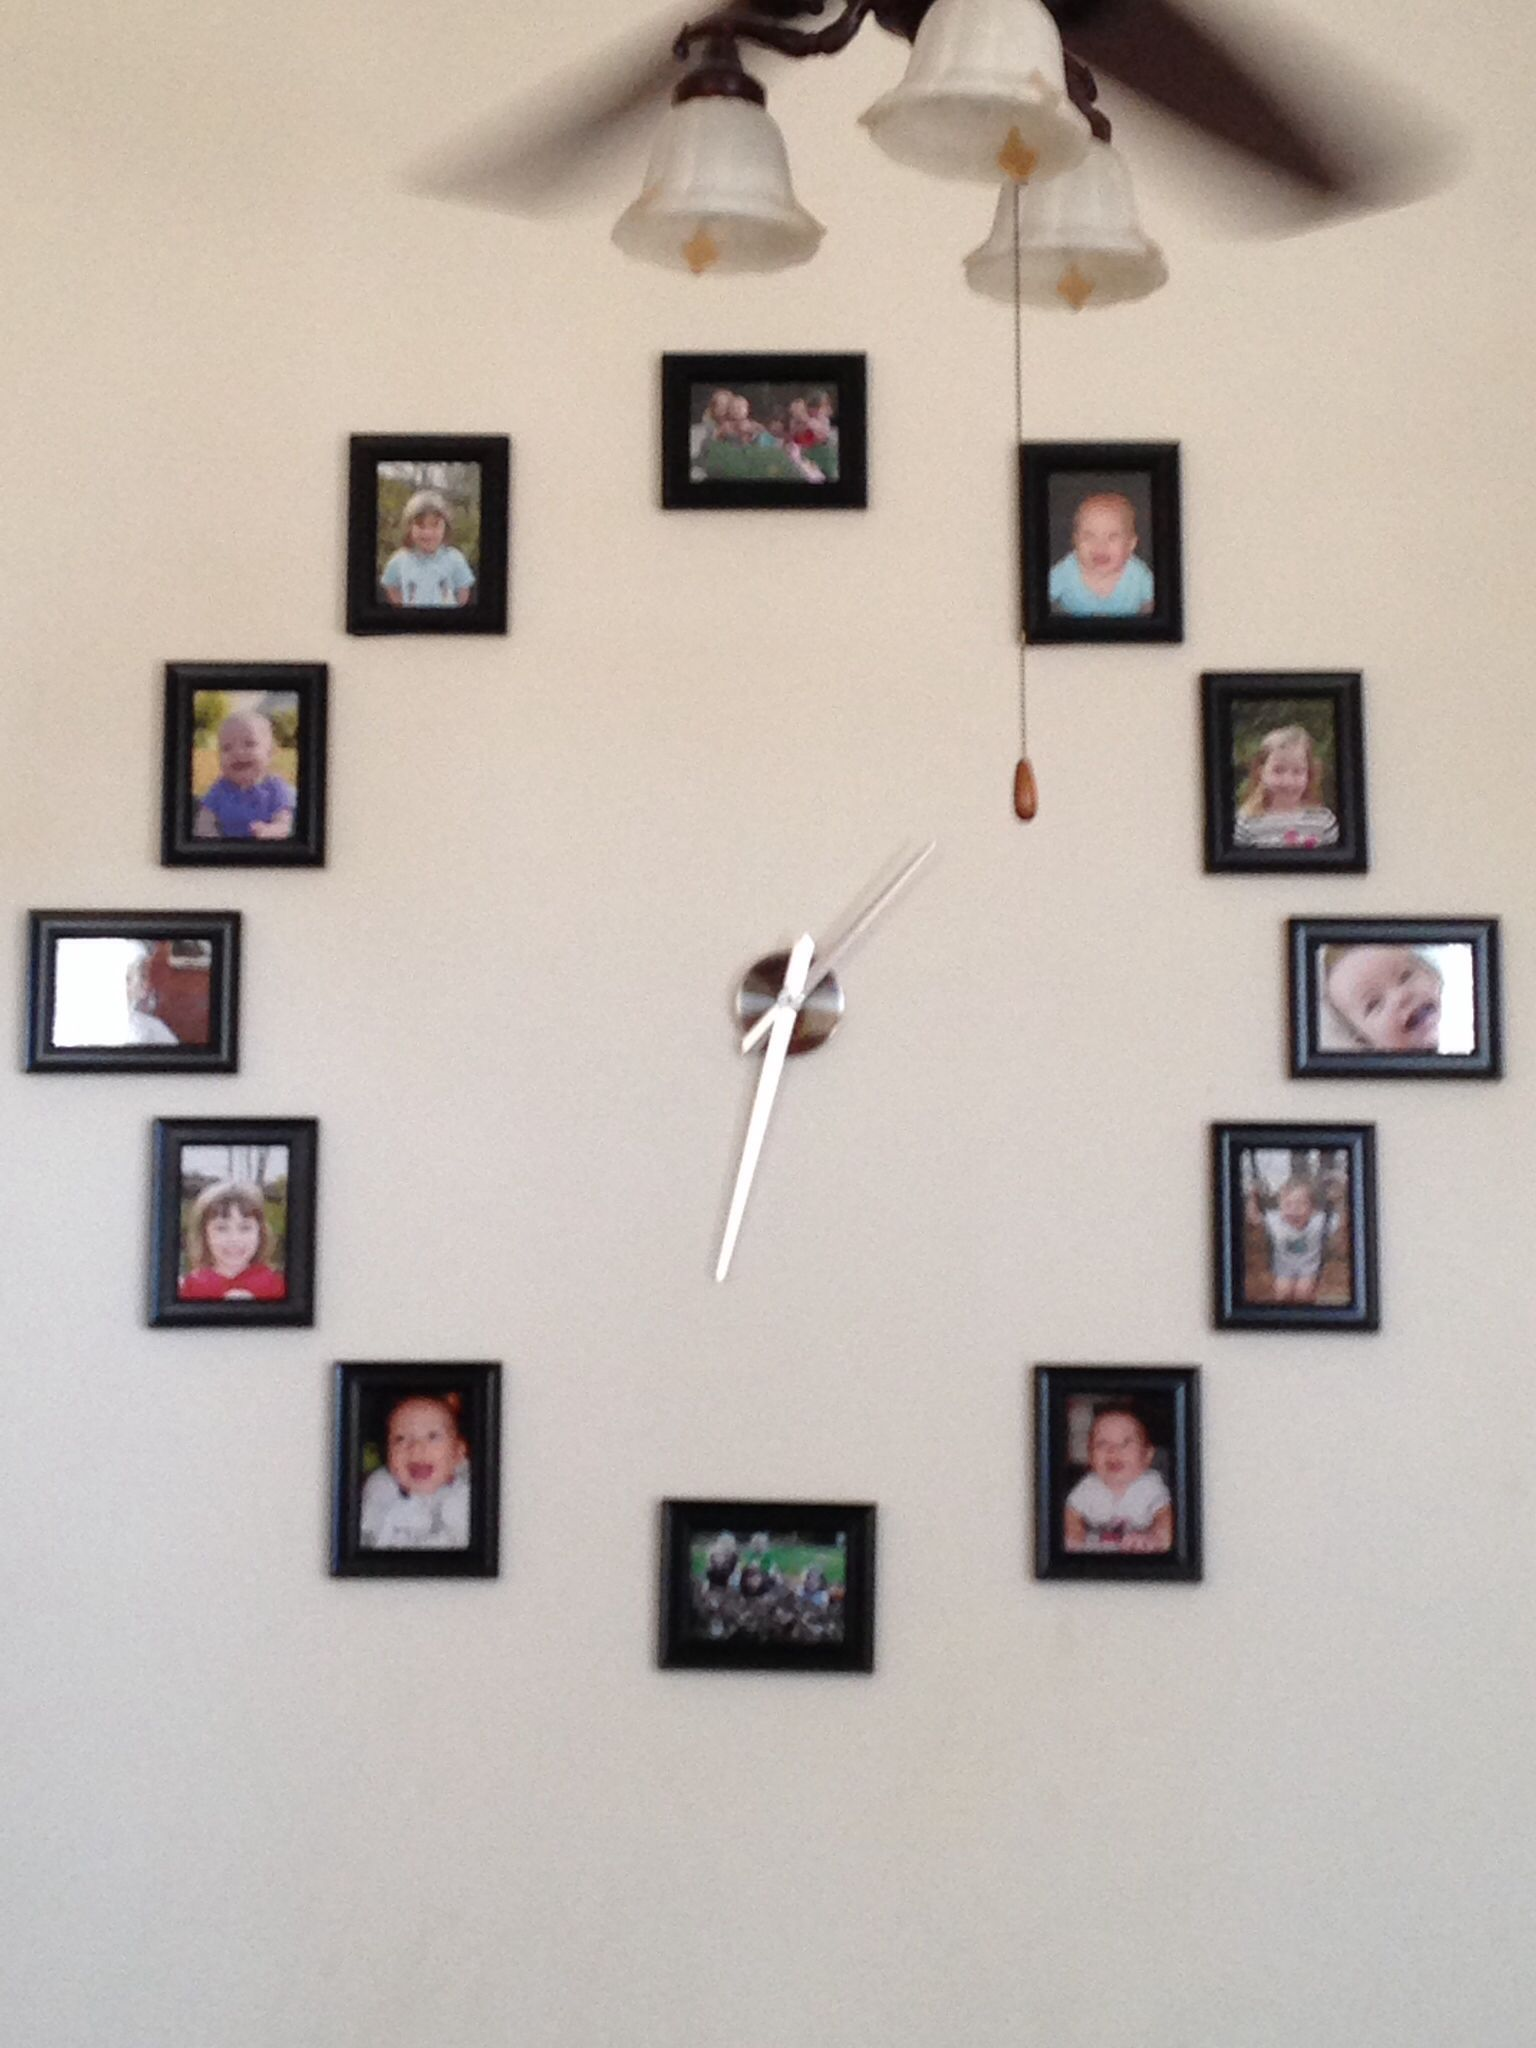 I Used Framed 5x7 Pictures Of My Five Kids And A Diy Clock Kit From